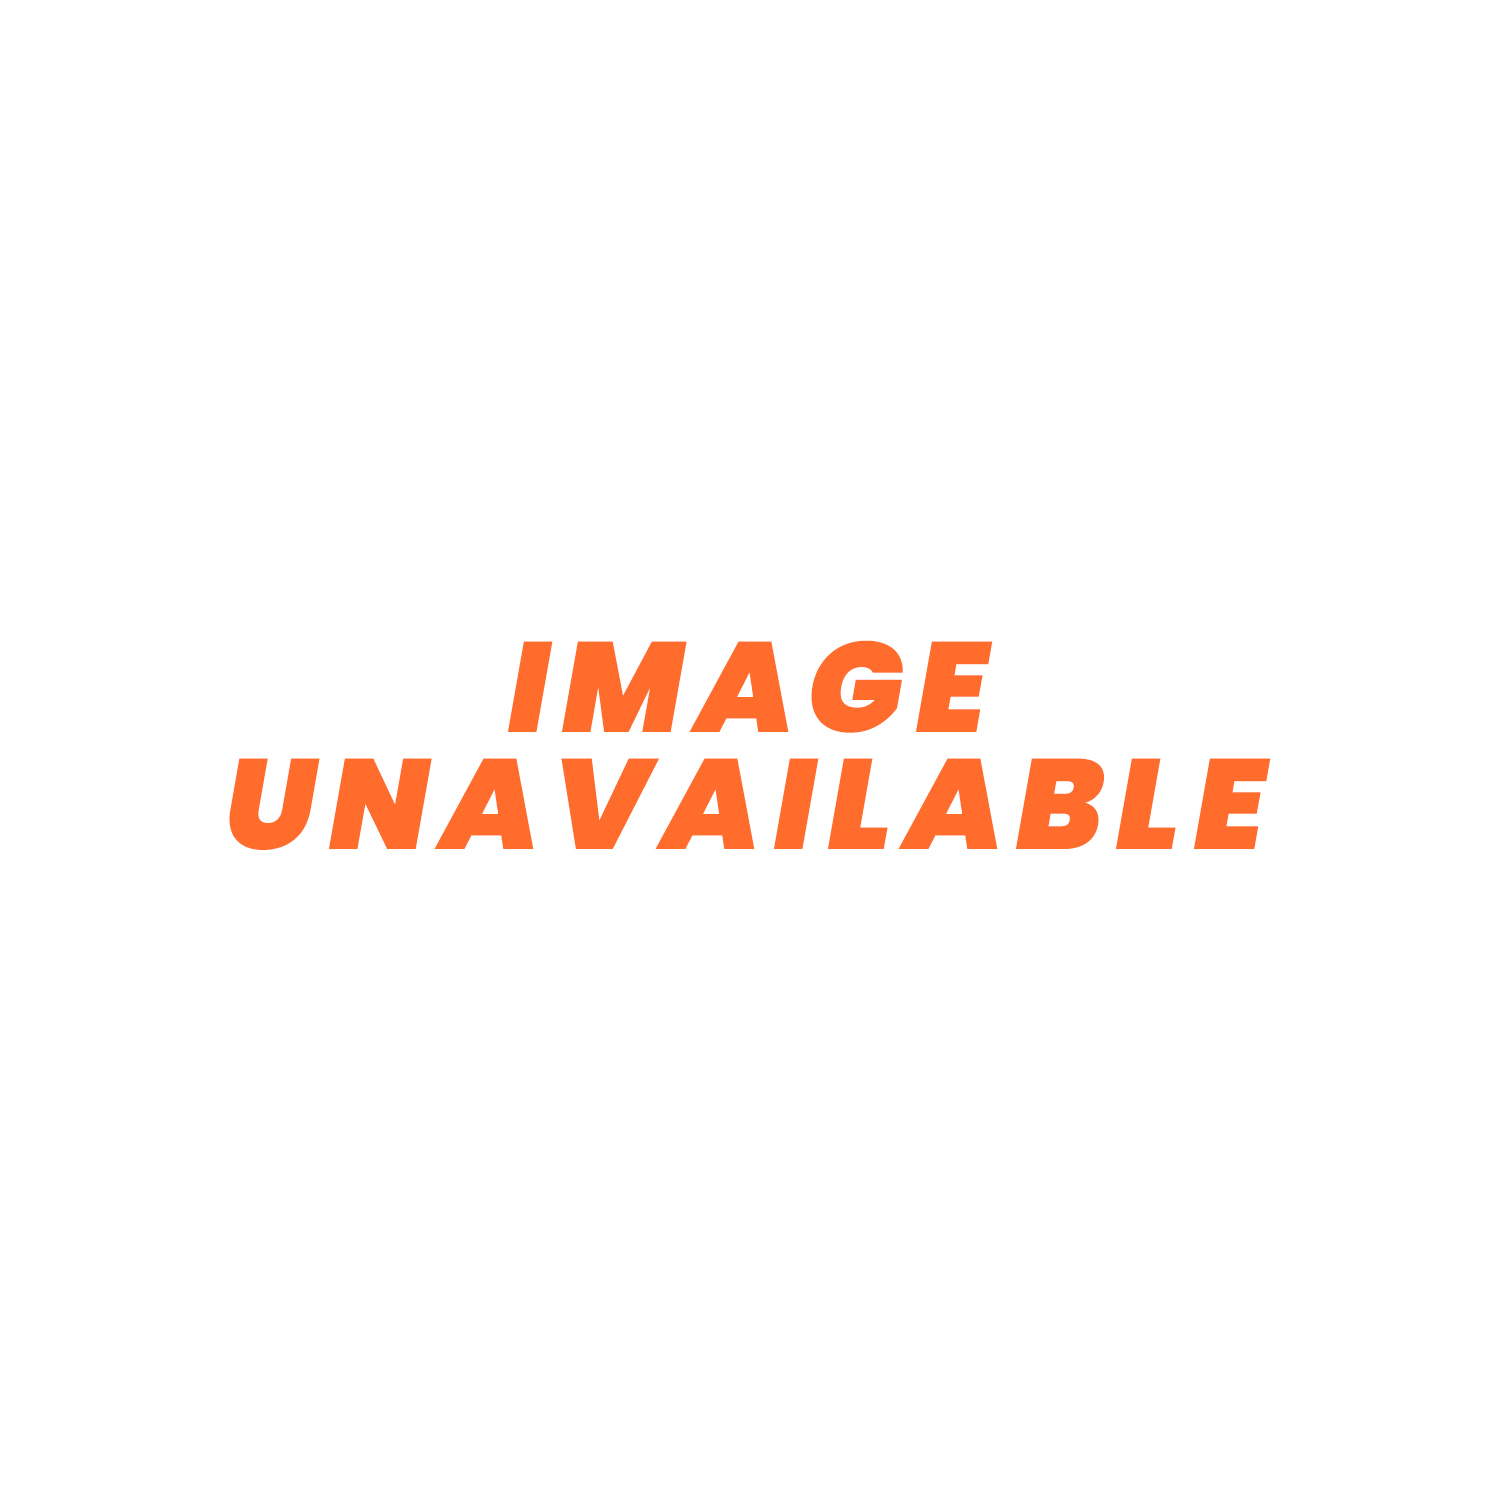 "SPAL Radiator Fan - 12.0"" (305mm) Push VA10-AP50/C-61S 1274cfm"